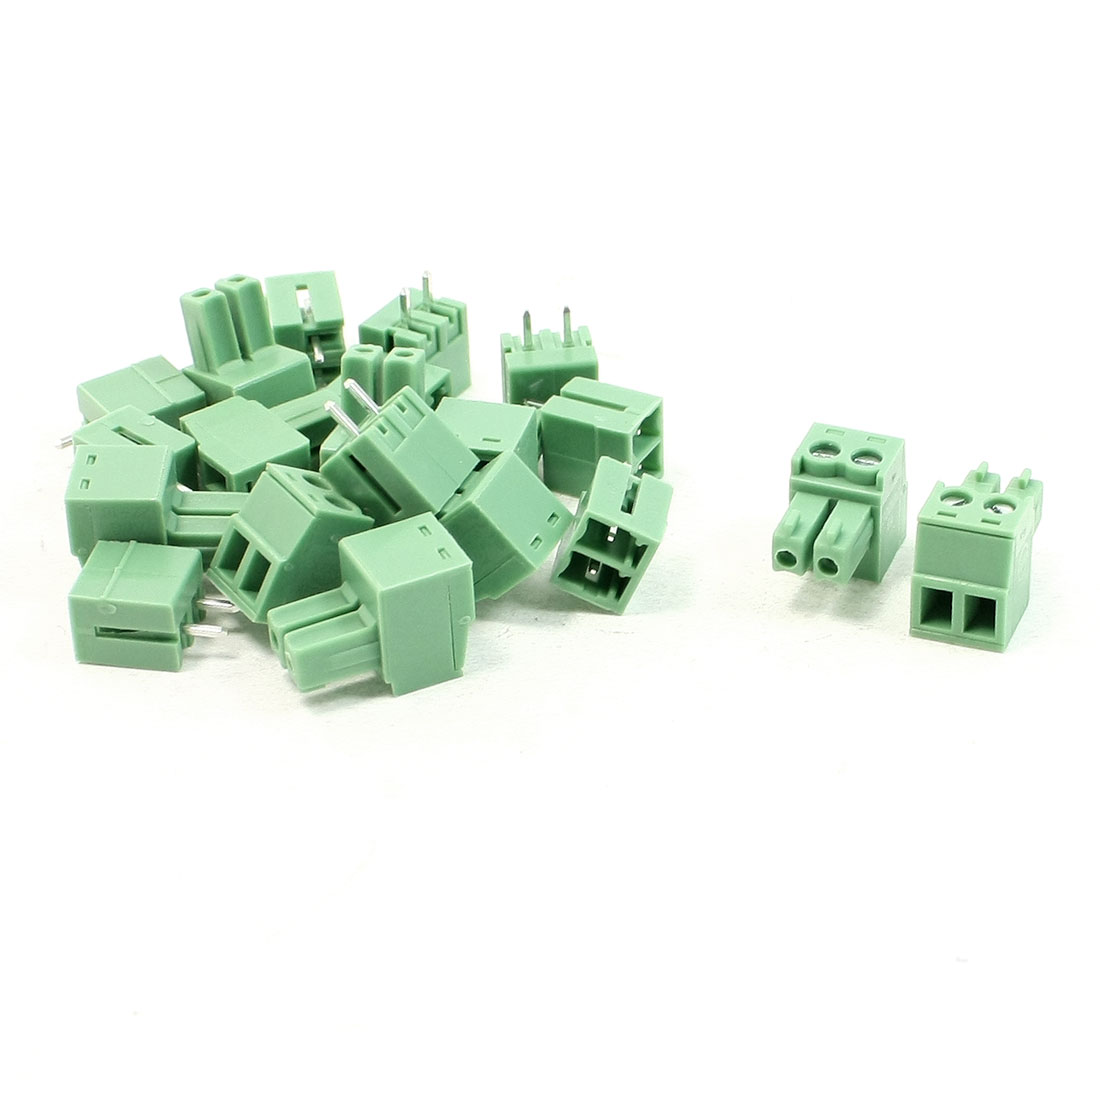 10 Set 2 Pole 3mm Pitch PCB Mount Screw Terminal Block AC 300V 8A